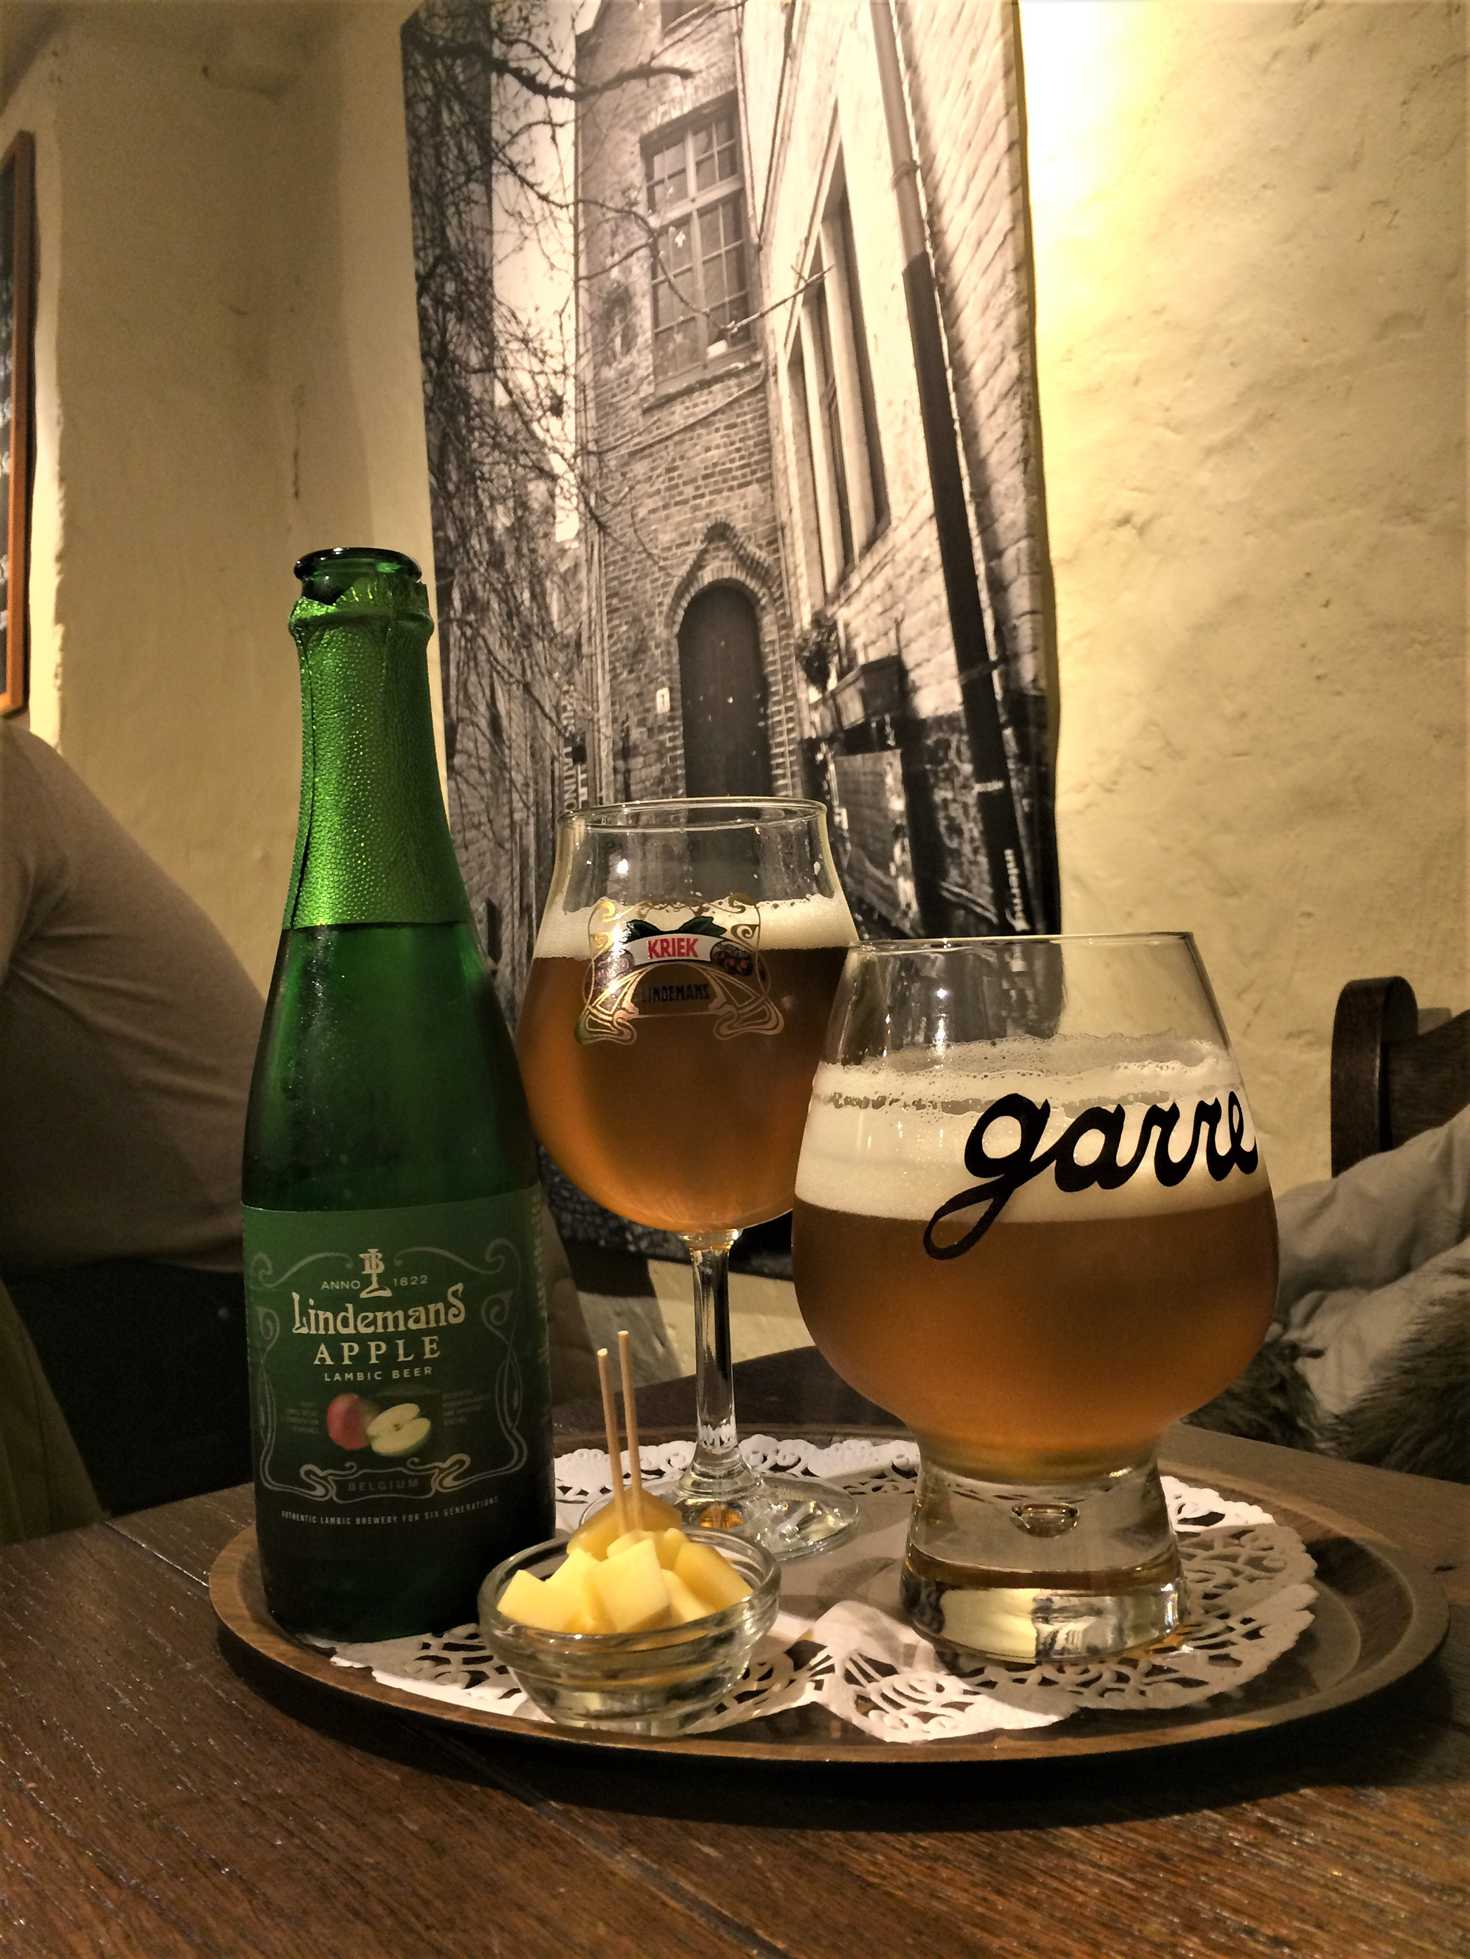 A picture of two glasses of beer, a bottle of lindman's apple lambic beer, and a small dish filled with cubed cheese.